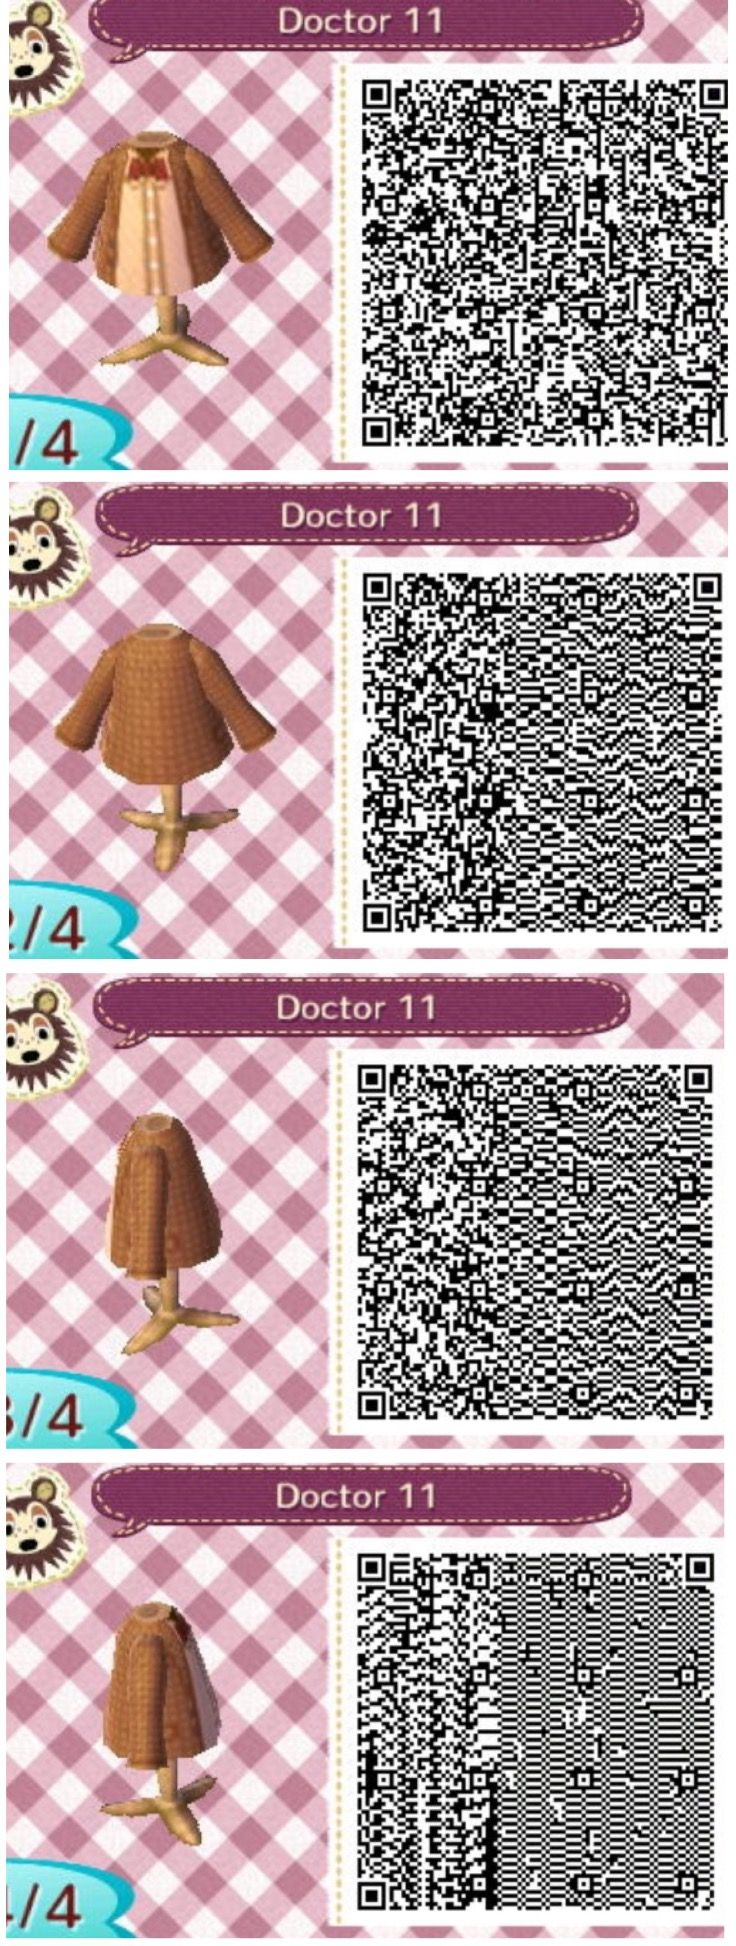 The 11th Doctor Who Animal Crossing New Leaf Qr Codes Animal